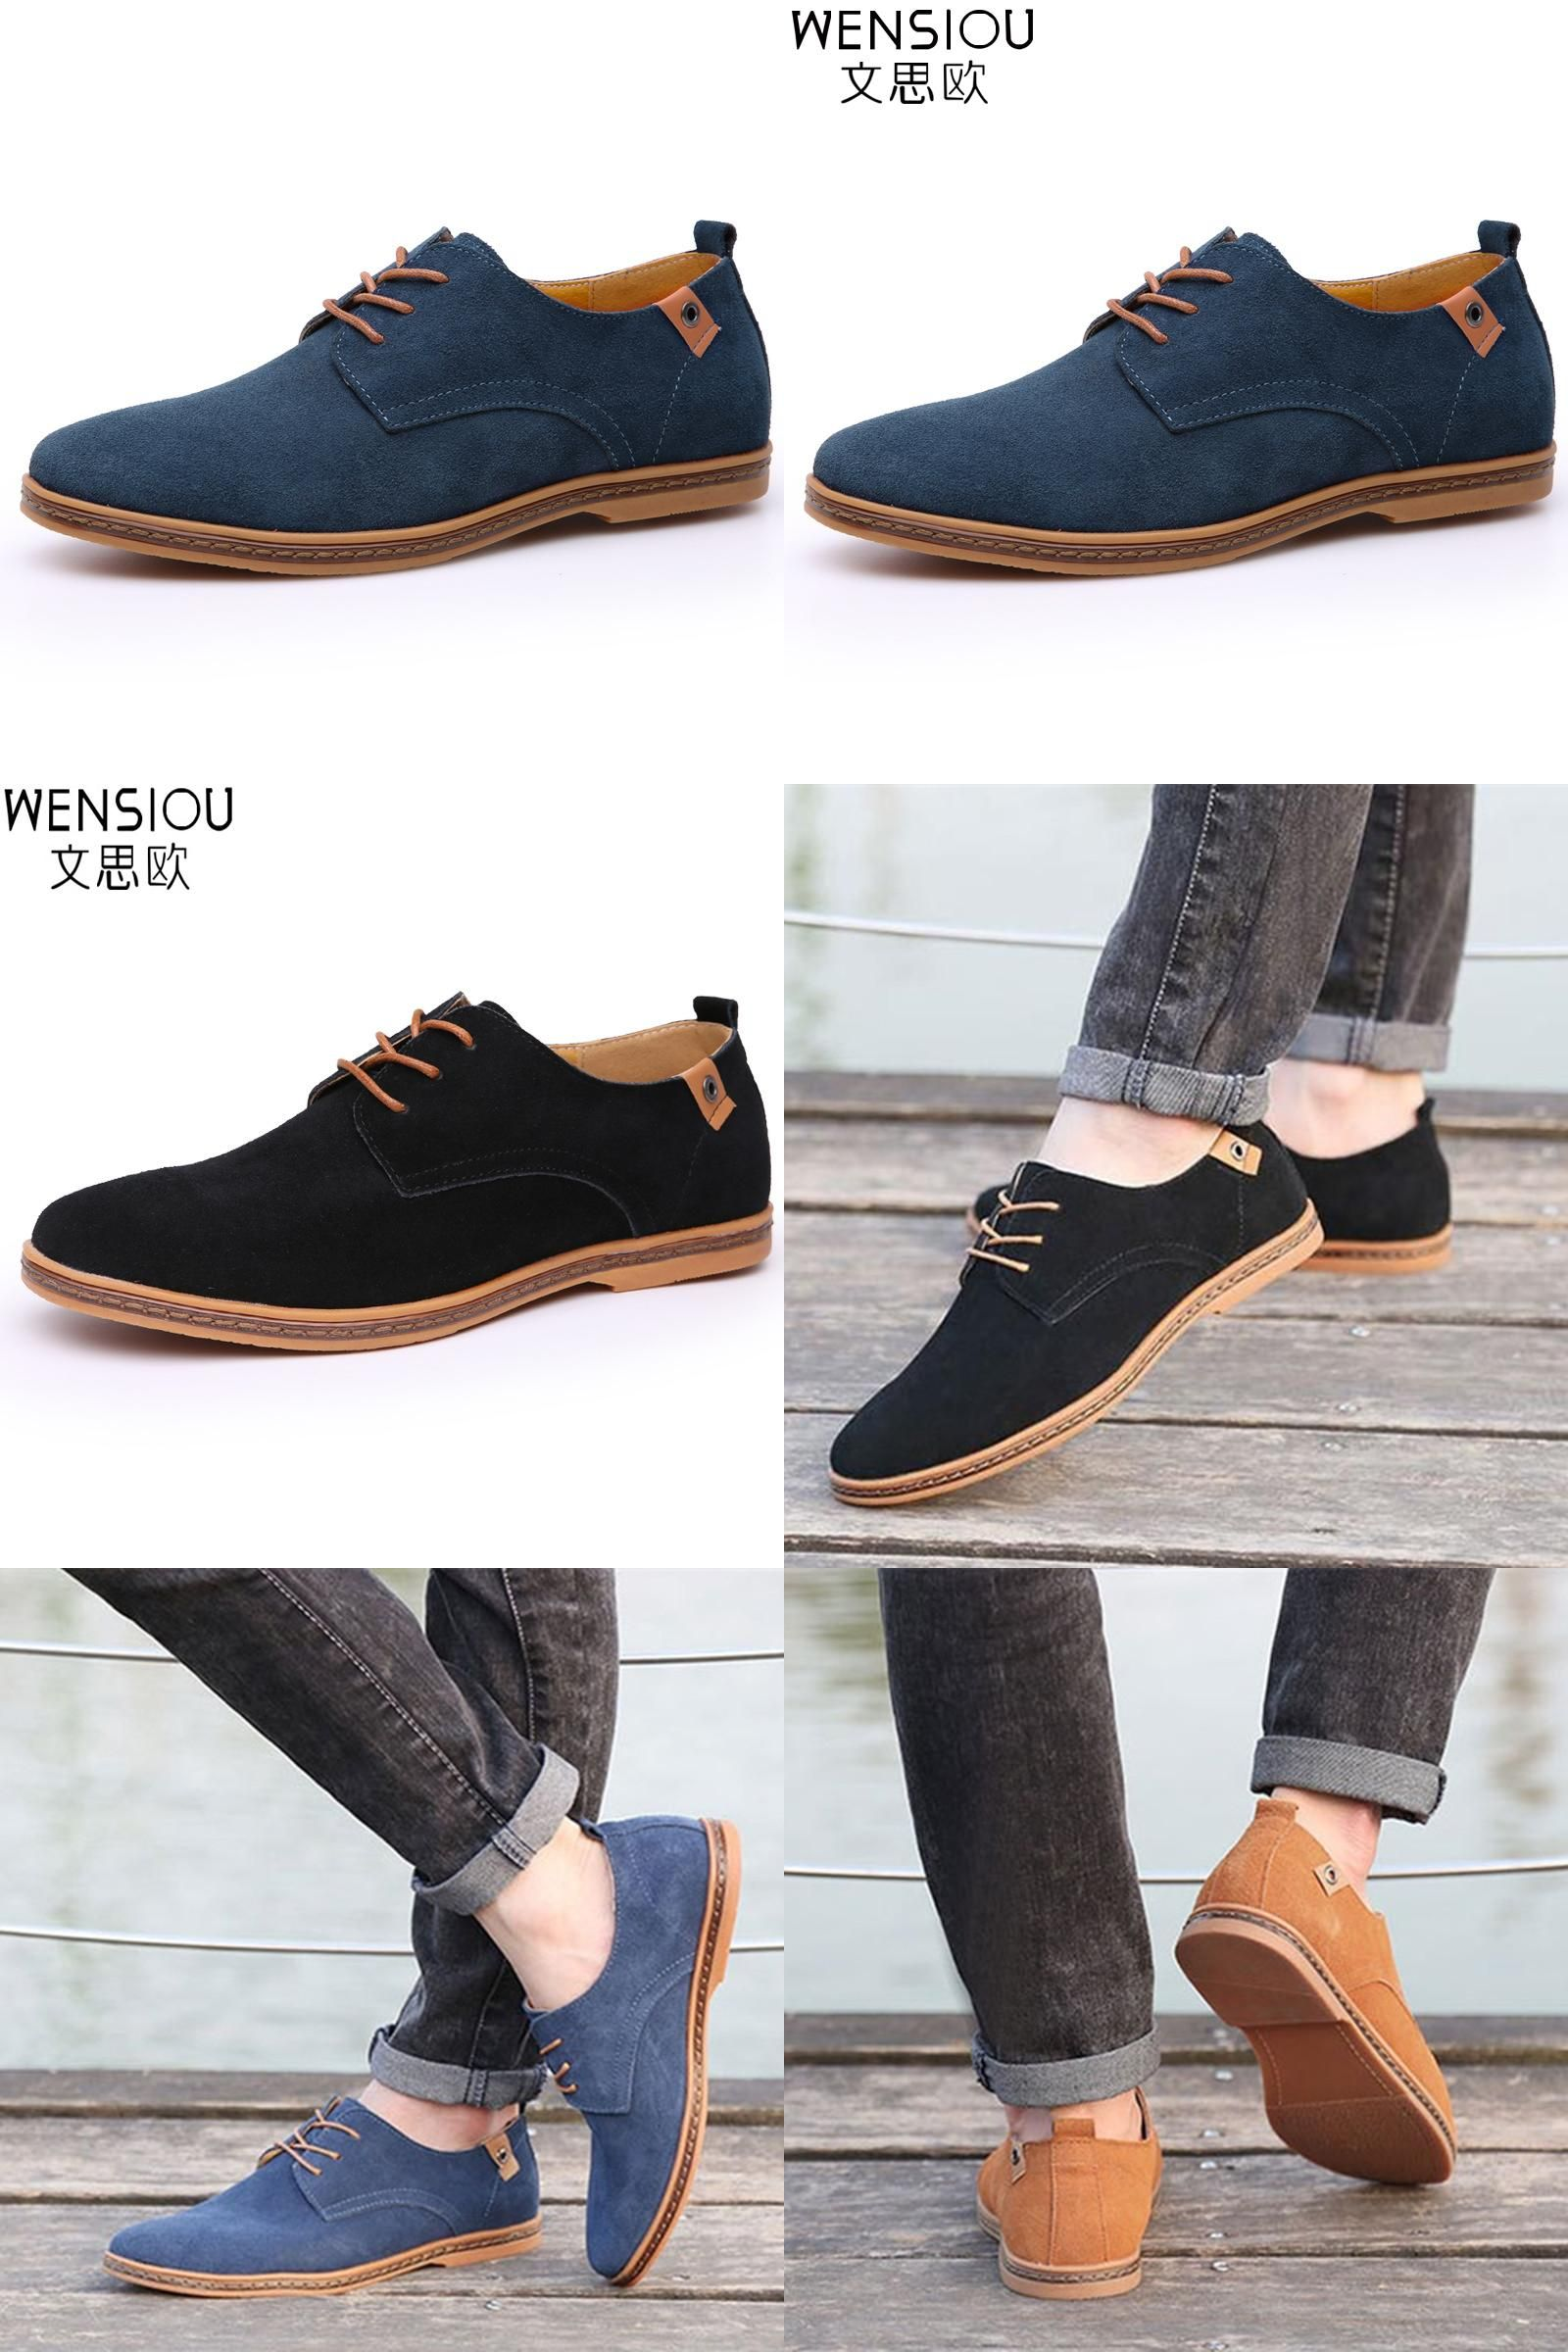 Espadrilles Mens Low-Top Canvas Shoes Outdoor Exercise Sneakers Casual Flat Loafers Lace-up Deck Shoes (Color : C Size : 44)